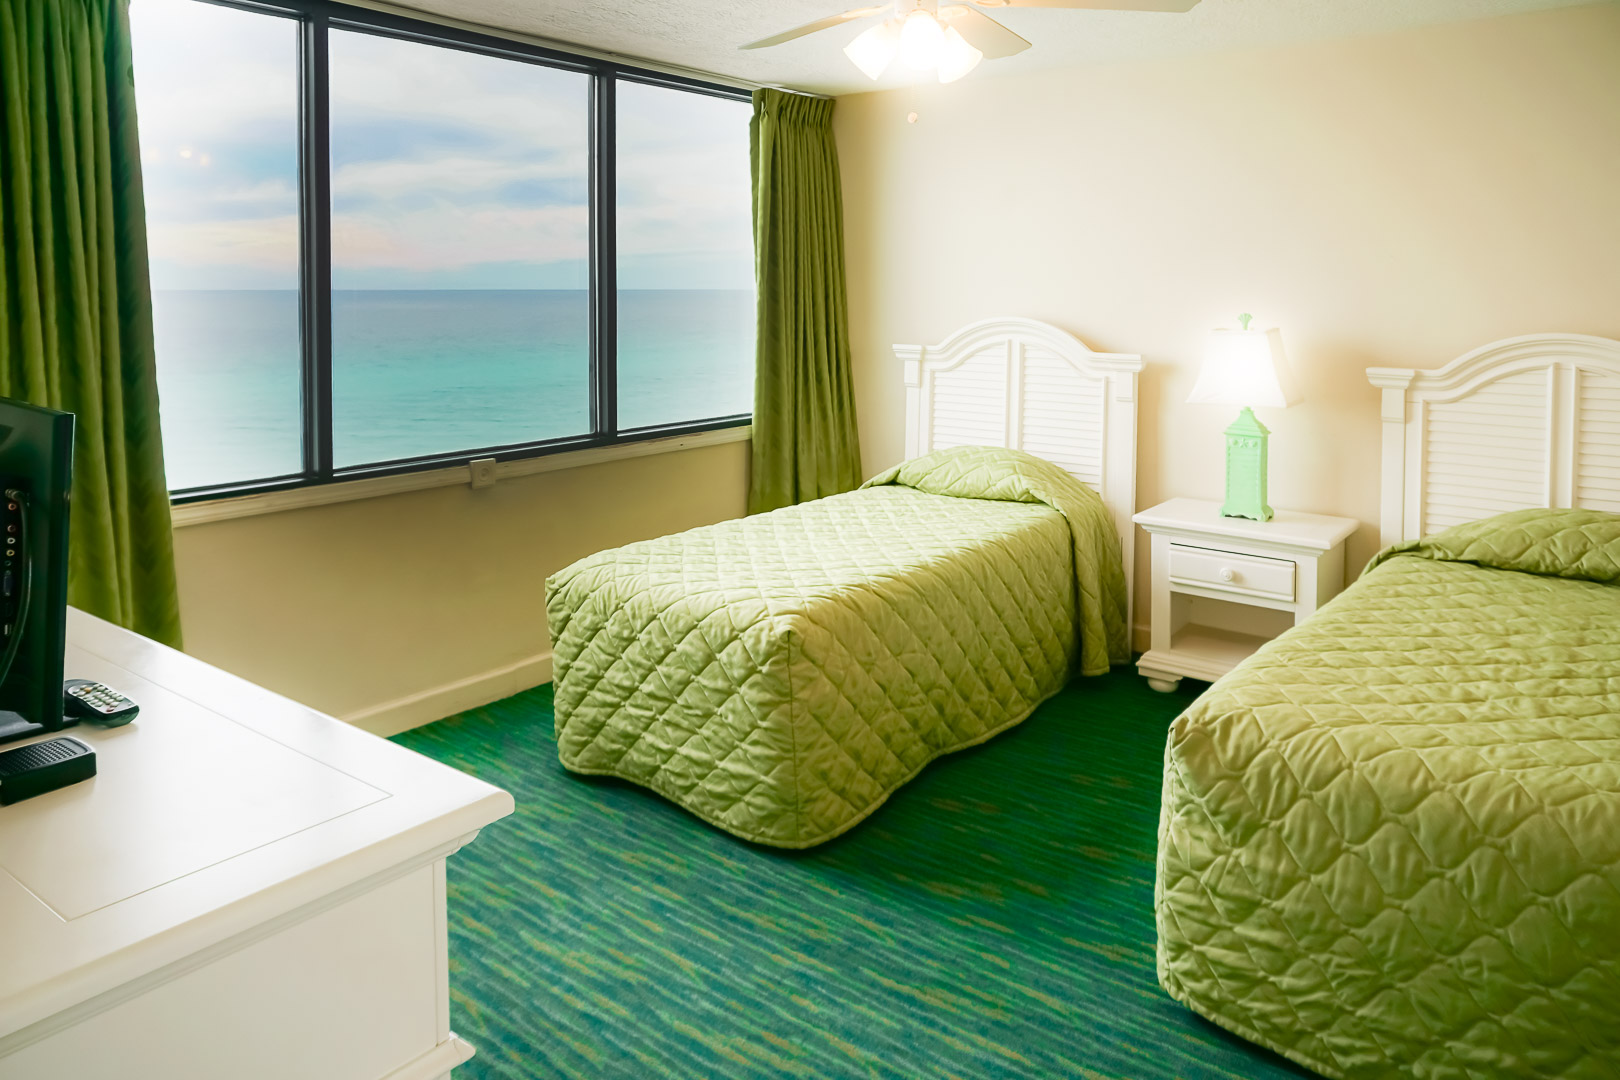 A two bedroom unit with double beds at VRI's Landmark Holiday Beach Resort in Panama City, Florida.